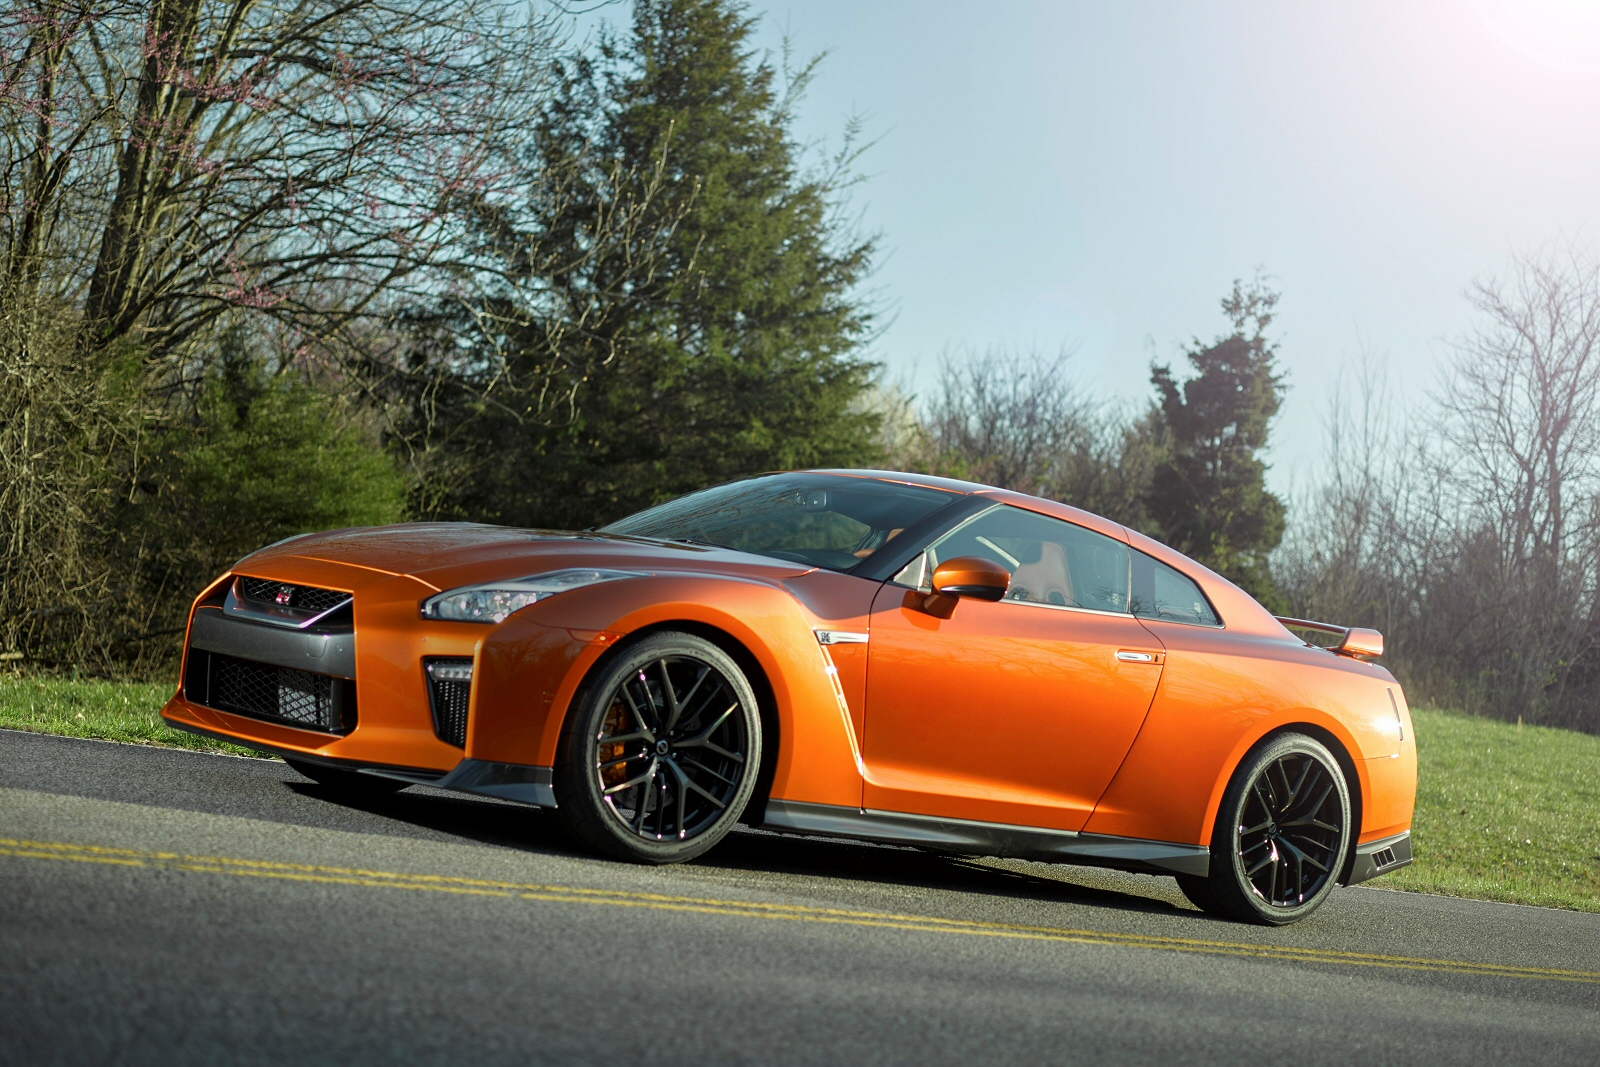 ... 3.8 Track Edition Engineered By Nismo 2Dr Auto Petrol Coupe ...